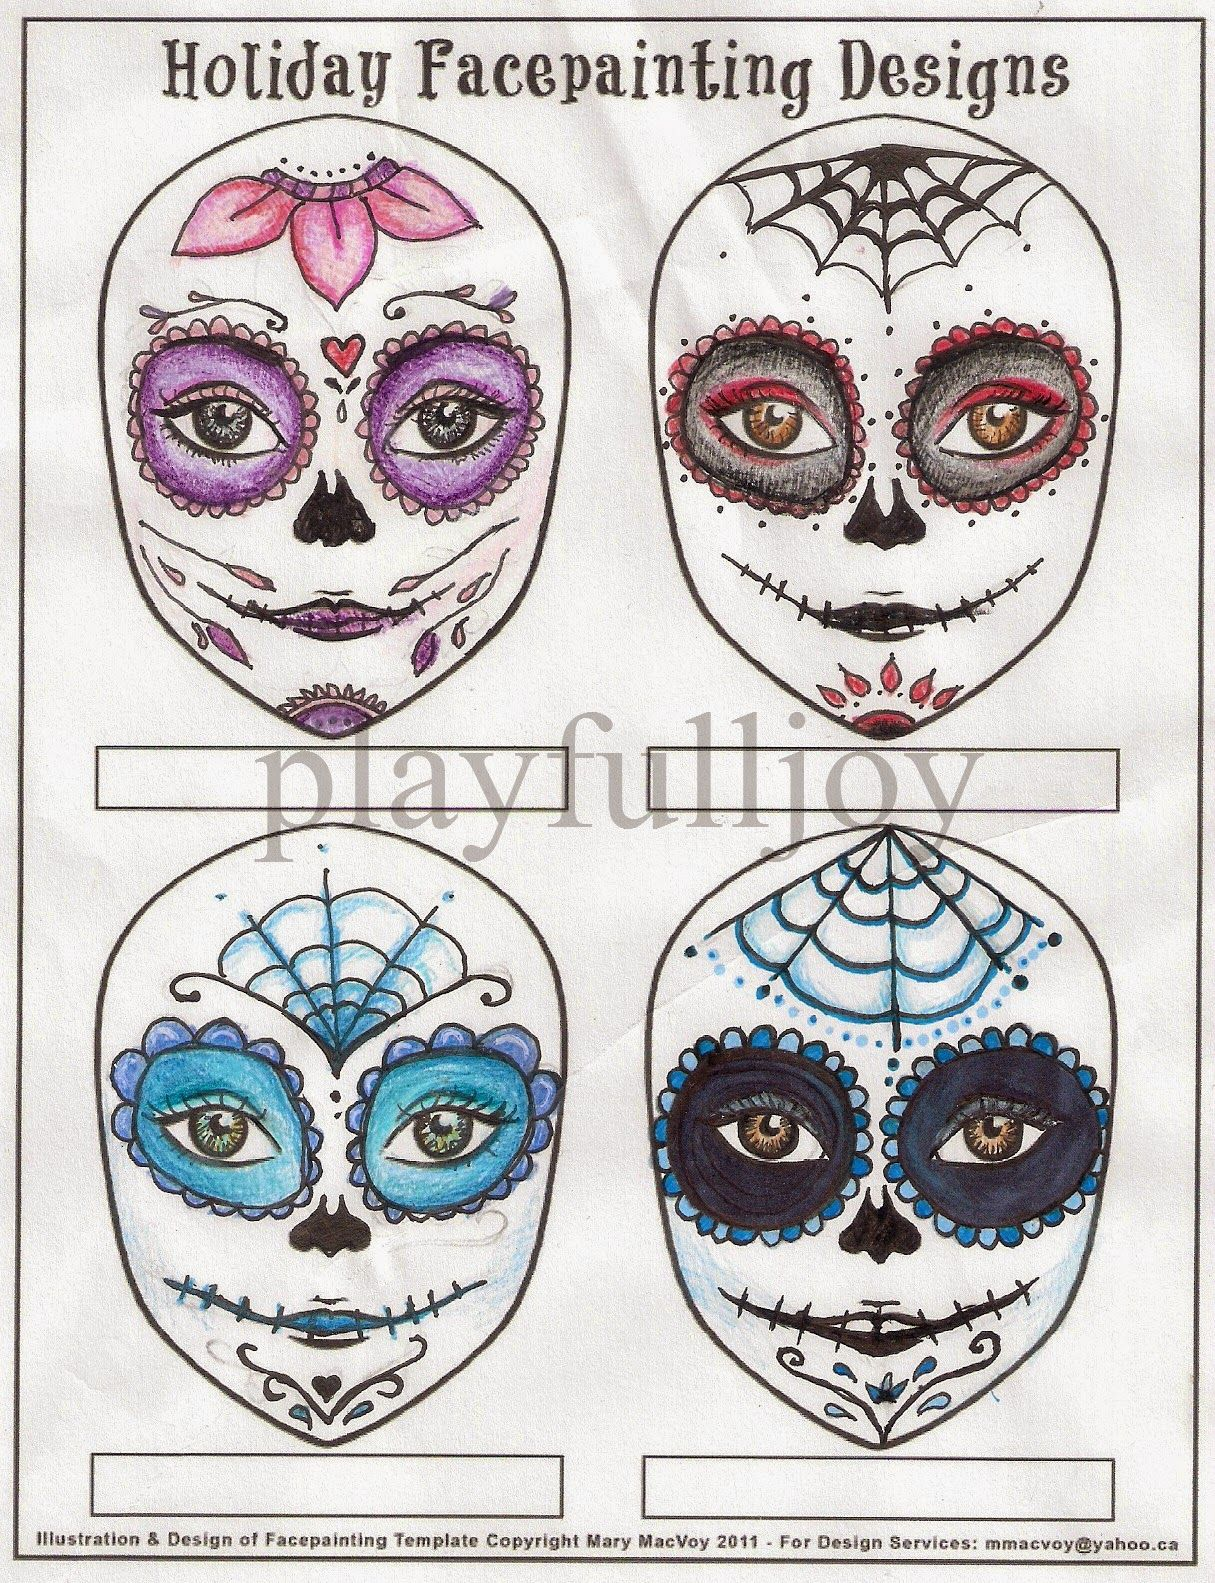 playfulljoy: Halloween Sugar Skulls | playfulljoy blog | Pinterest ...